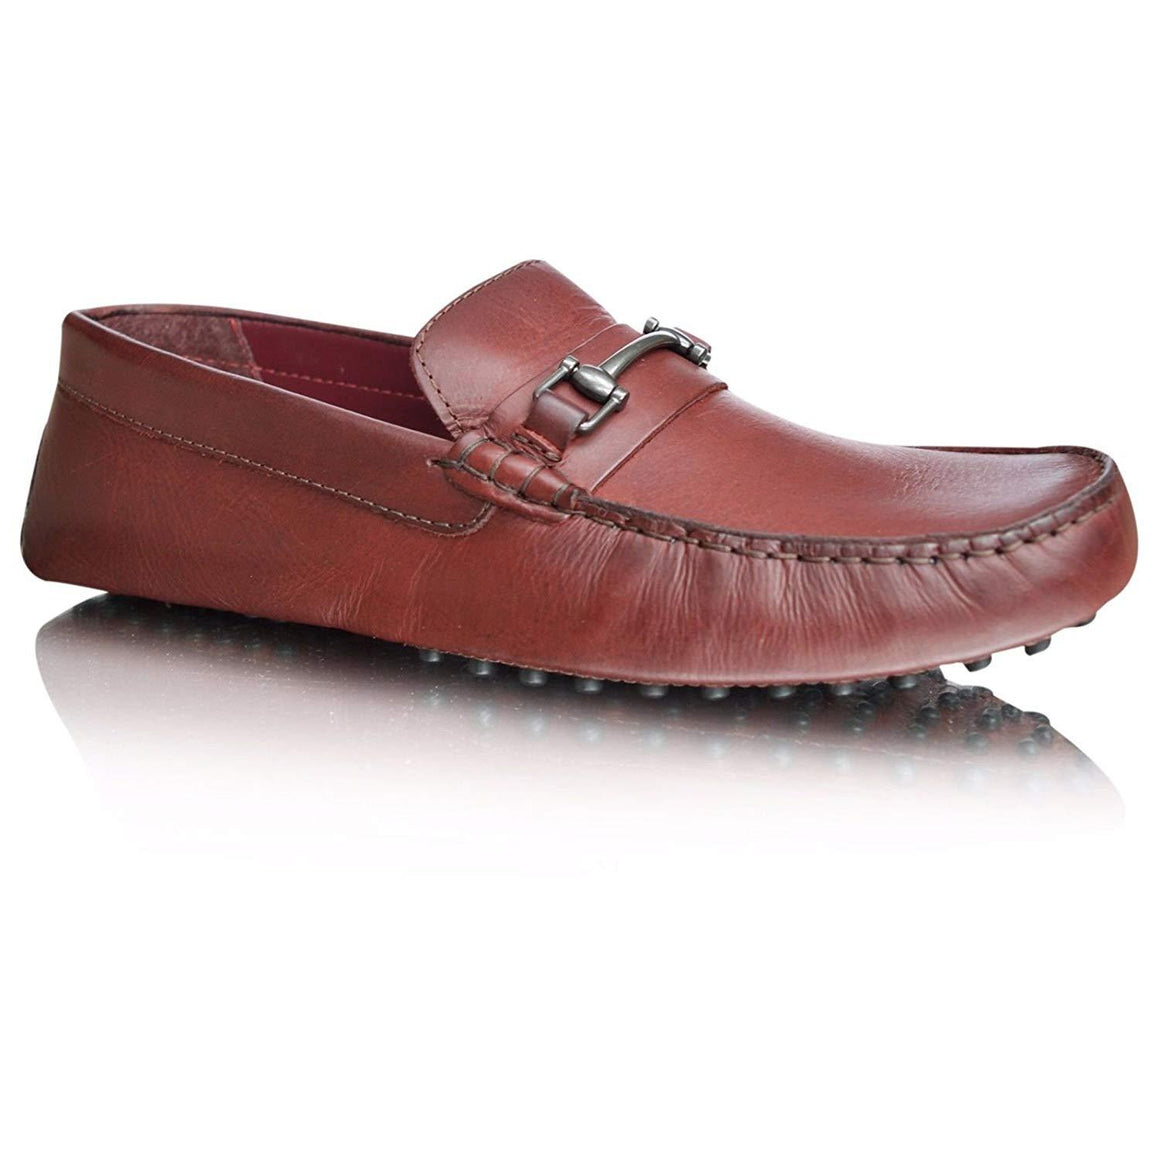 Mens Leather Loafers Casual Slip On Driving Moccasins Flat Shoes